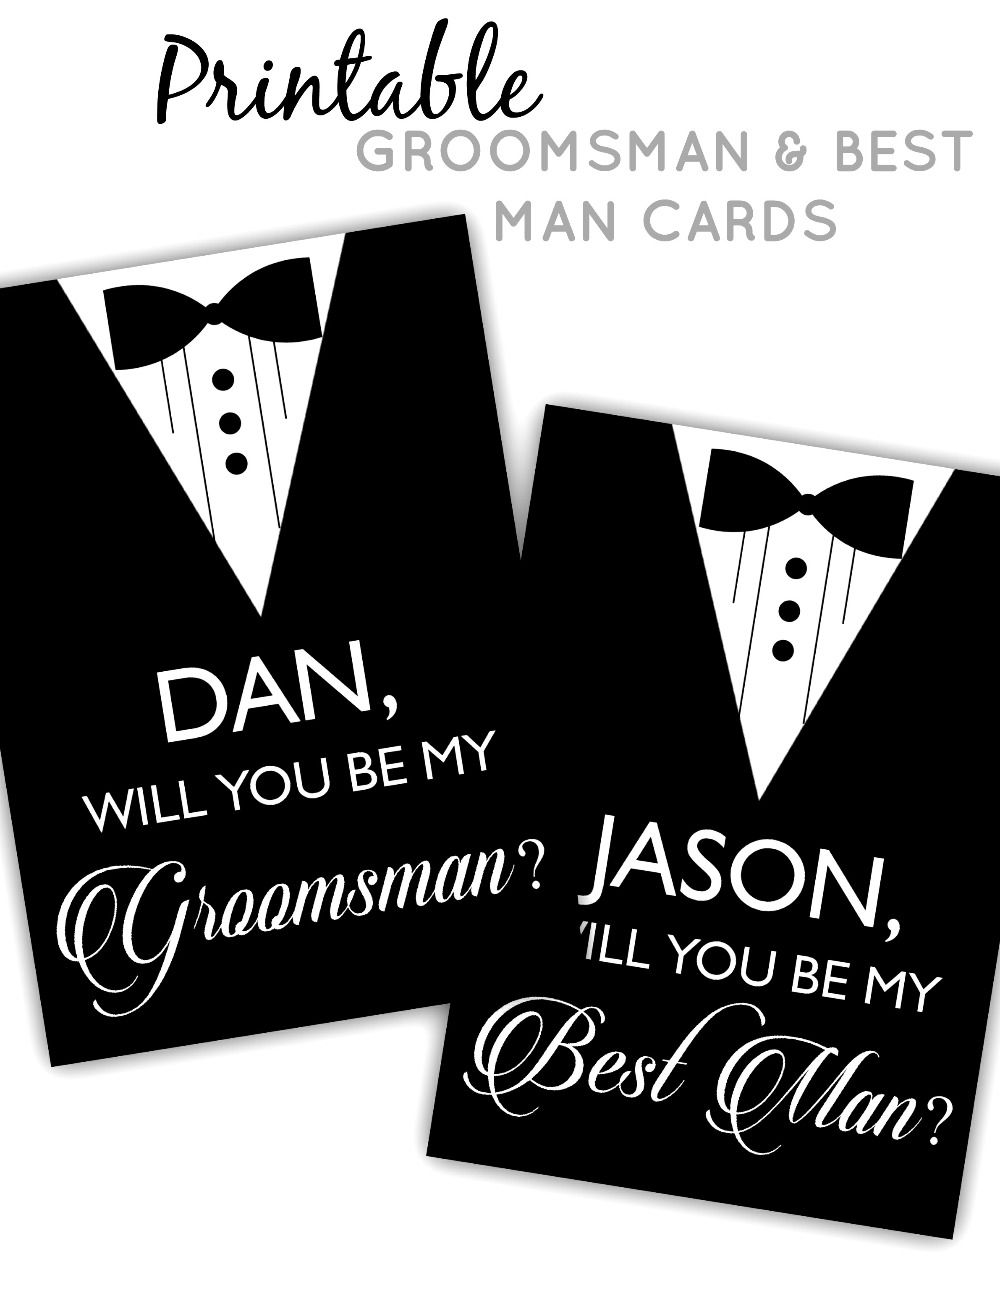 Printable Groomsman Best Man Cards Groomsman Gifts Cards Be My Groomsman